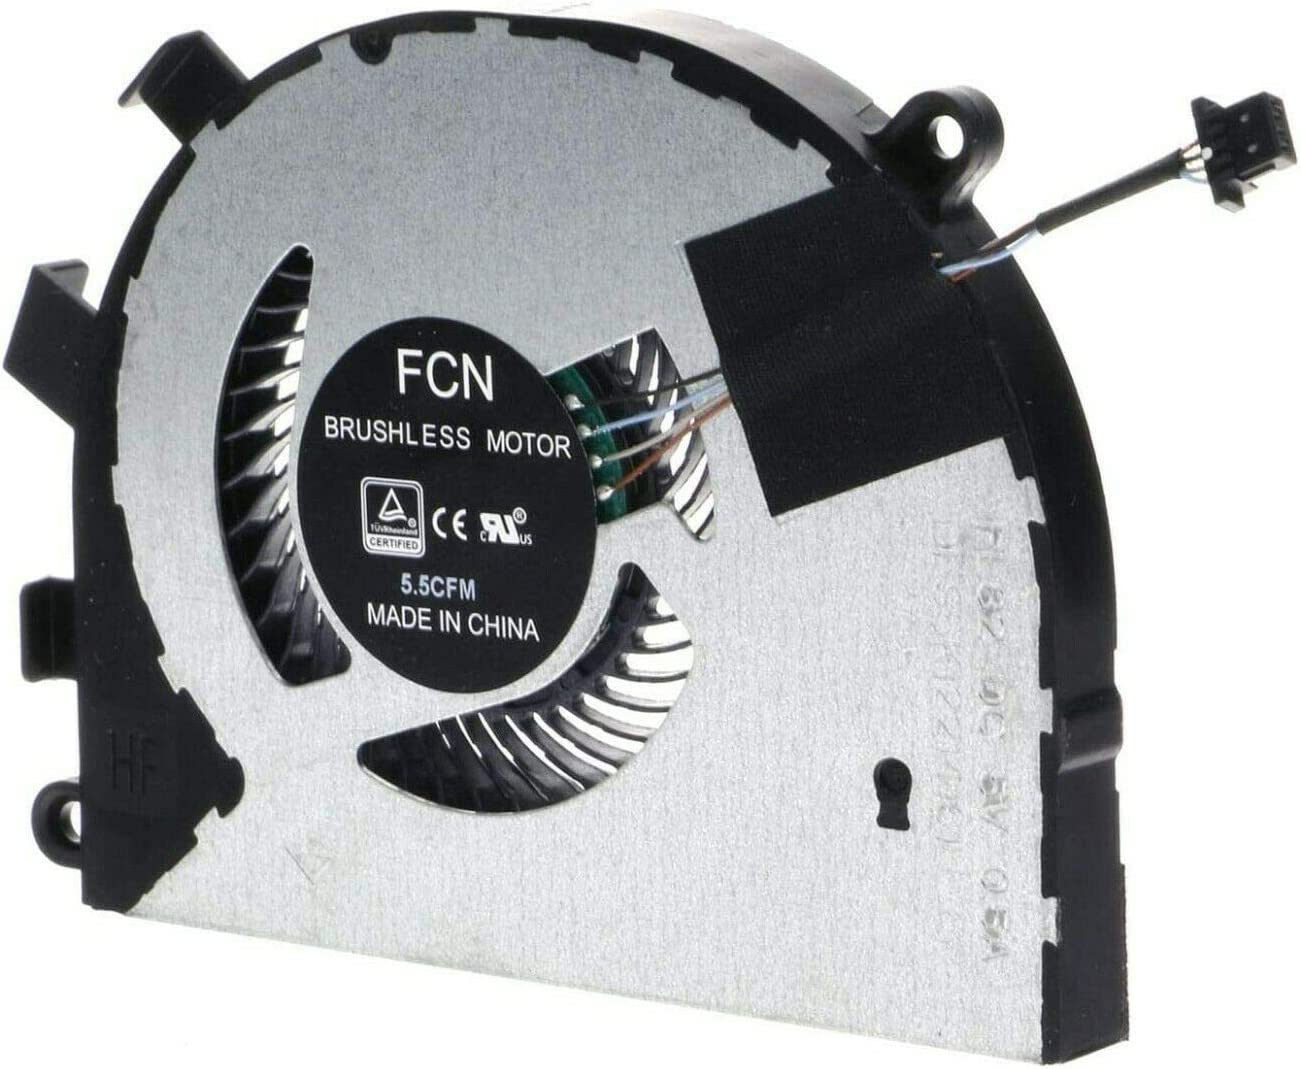 HK-Part Fan for Dell Inspiron 5584 15-5584 Latitude 3400 3500 CPU Cooling Fan 0T6RHW T6RHW